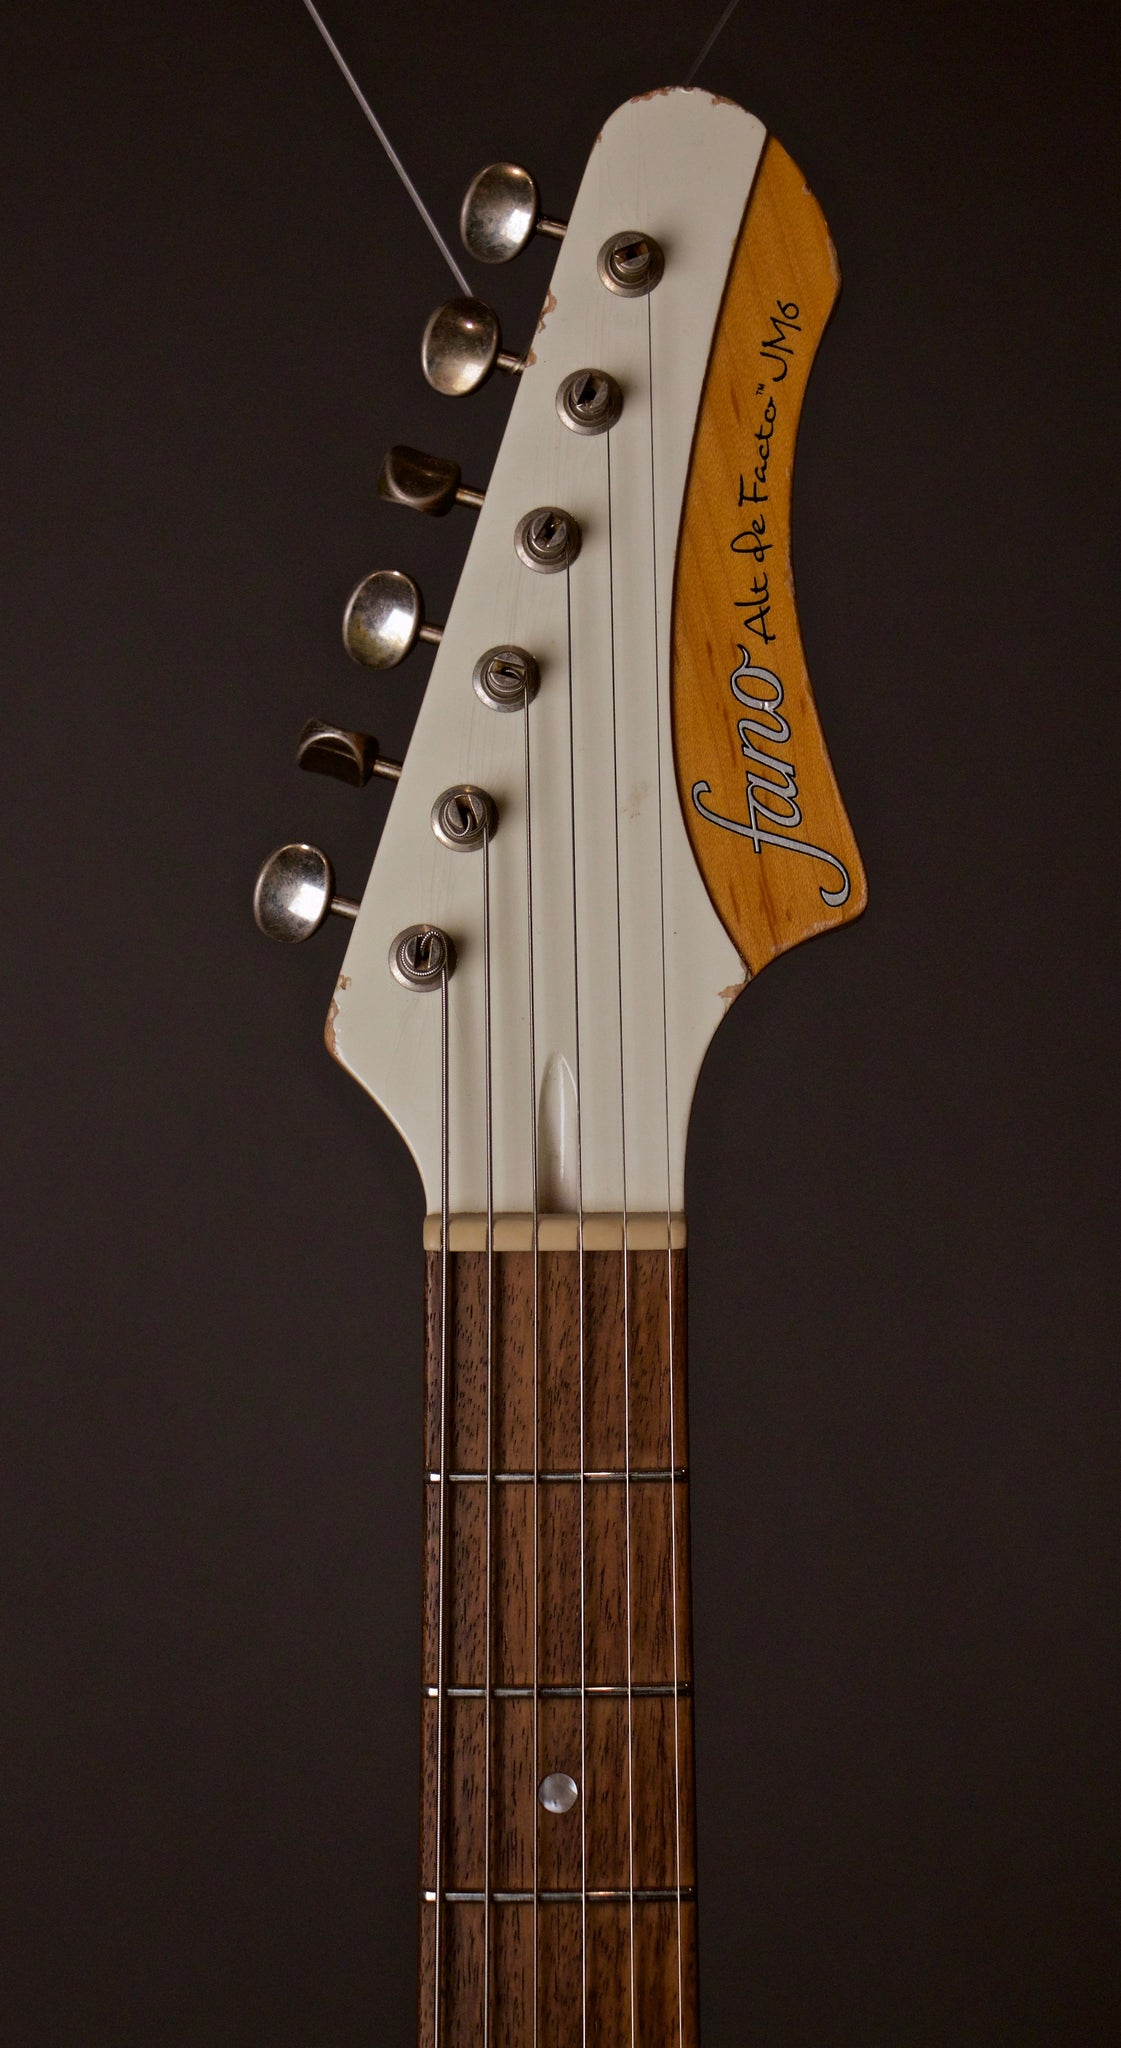 Fano Alt De Facto JM6 Electric Guitar Headstock